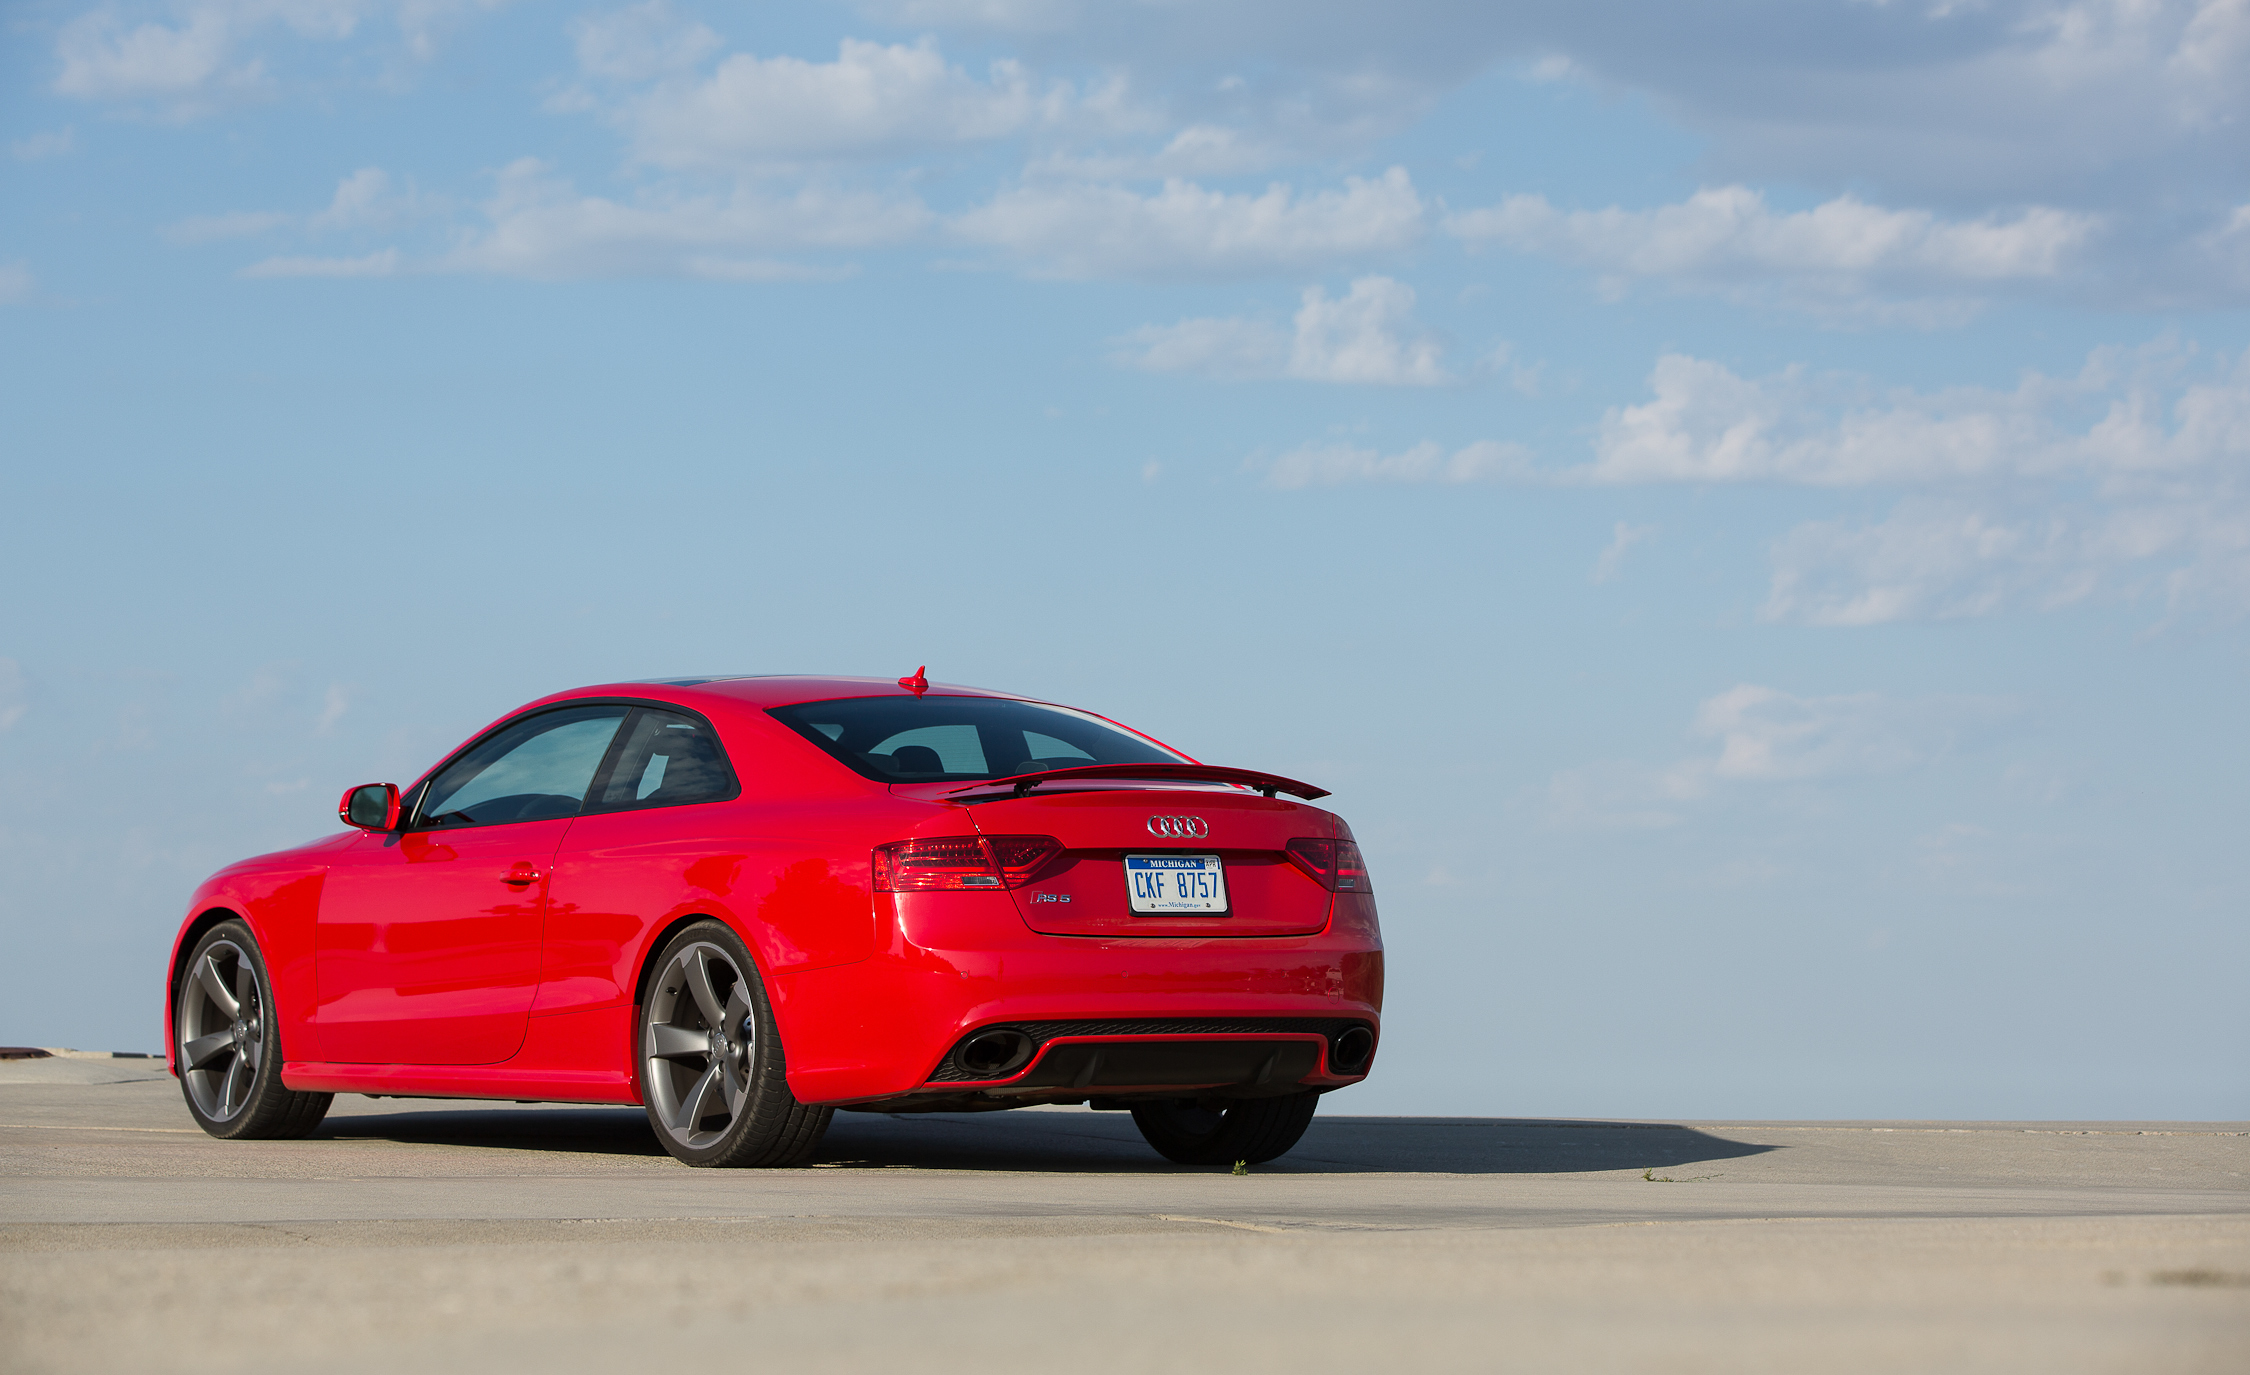 2013 Audi RS 5 Exterior Rear And Side (Photo 7 of 41)